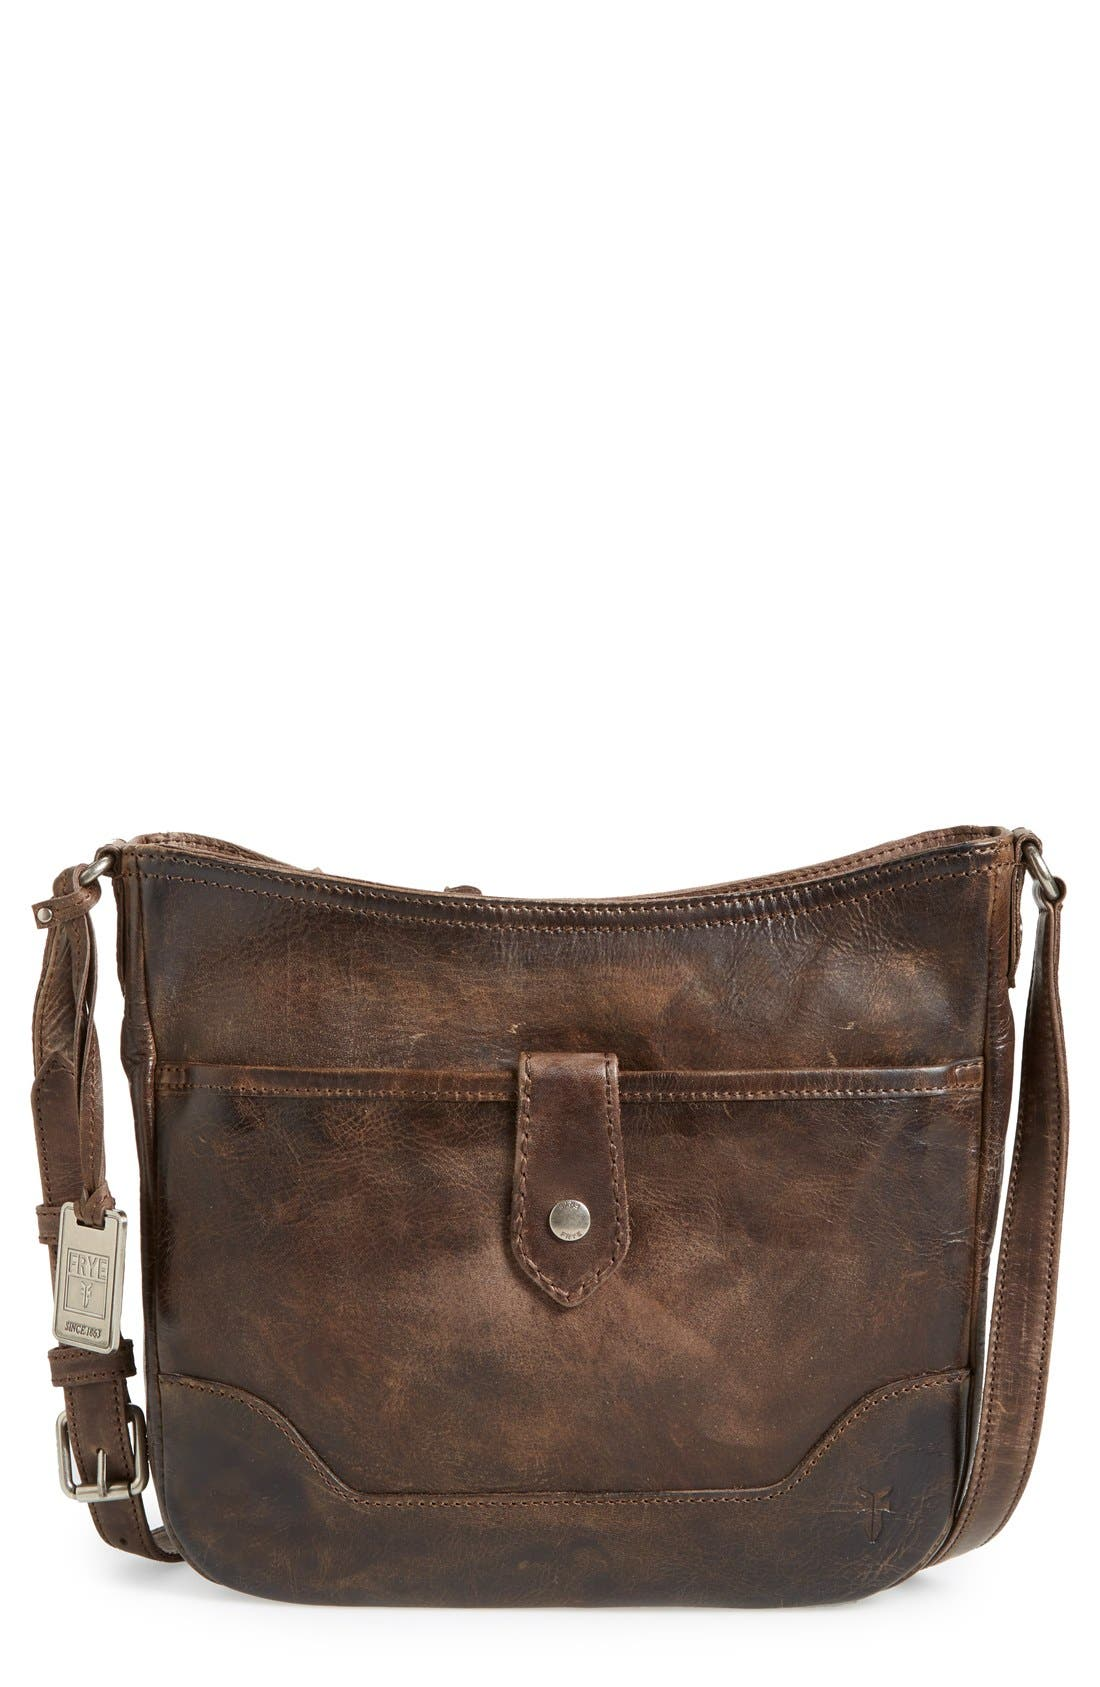 FRYE Melissa Button Crossbody Bag